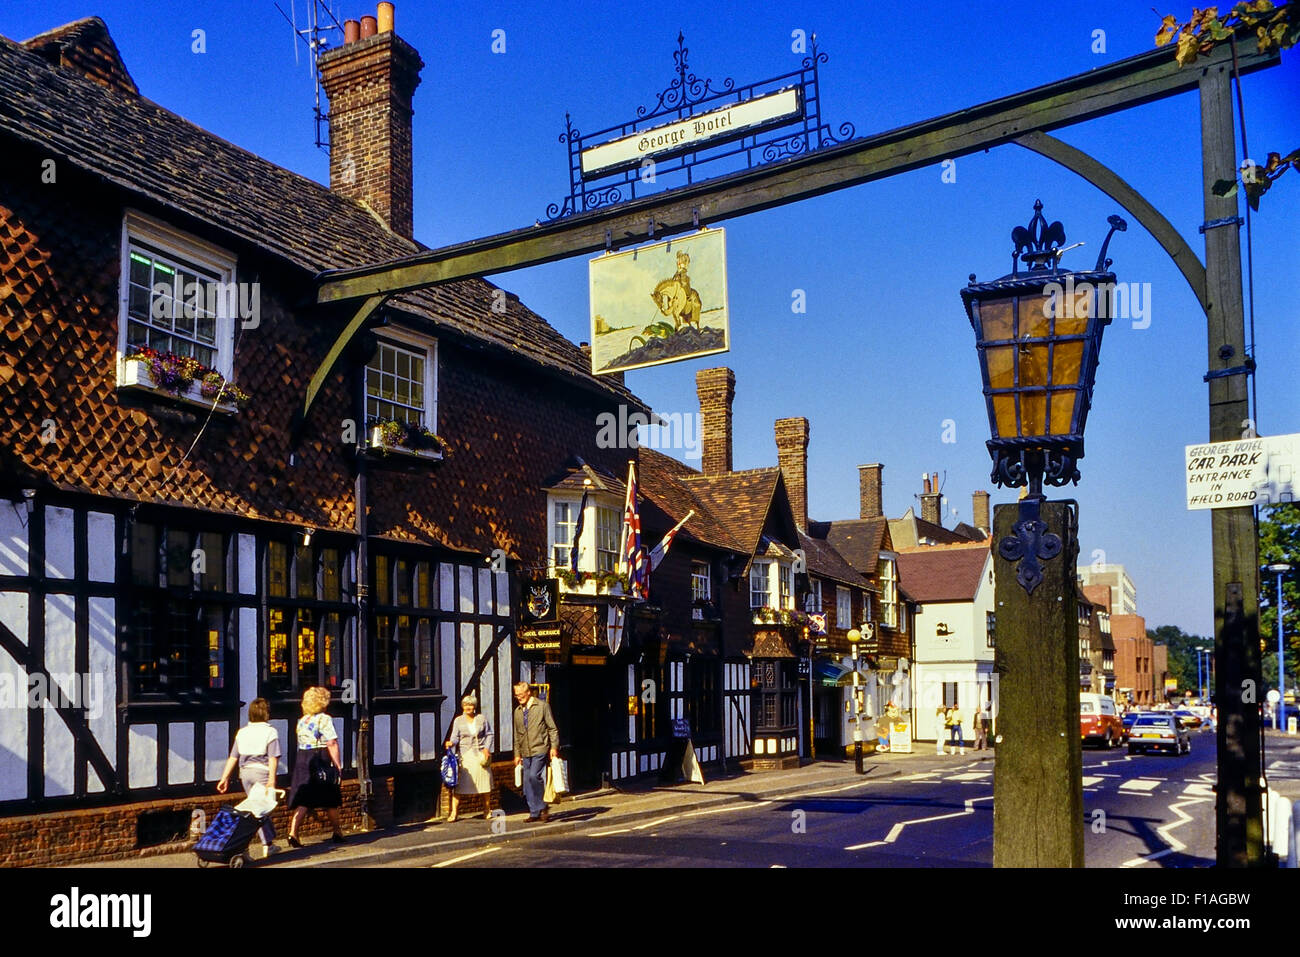 The George Hotel.  High Street. Crawley. West Sussex. England. UK. Circa 1980's - Stock Image